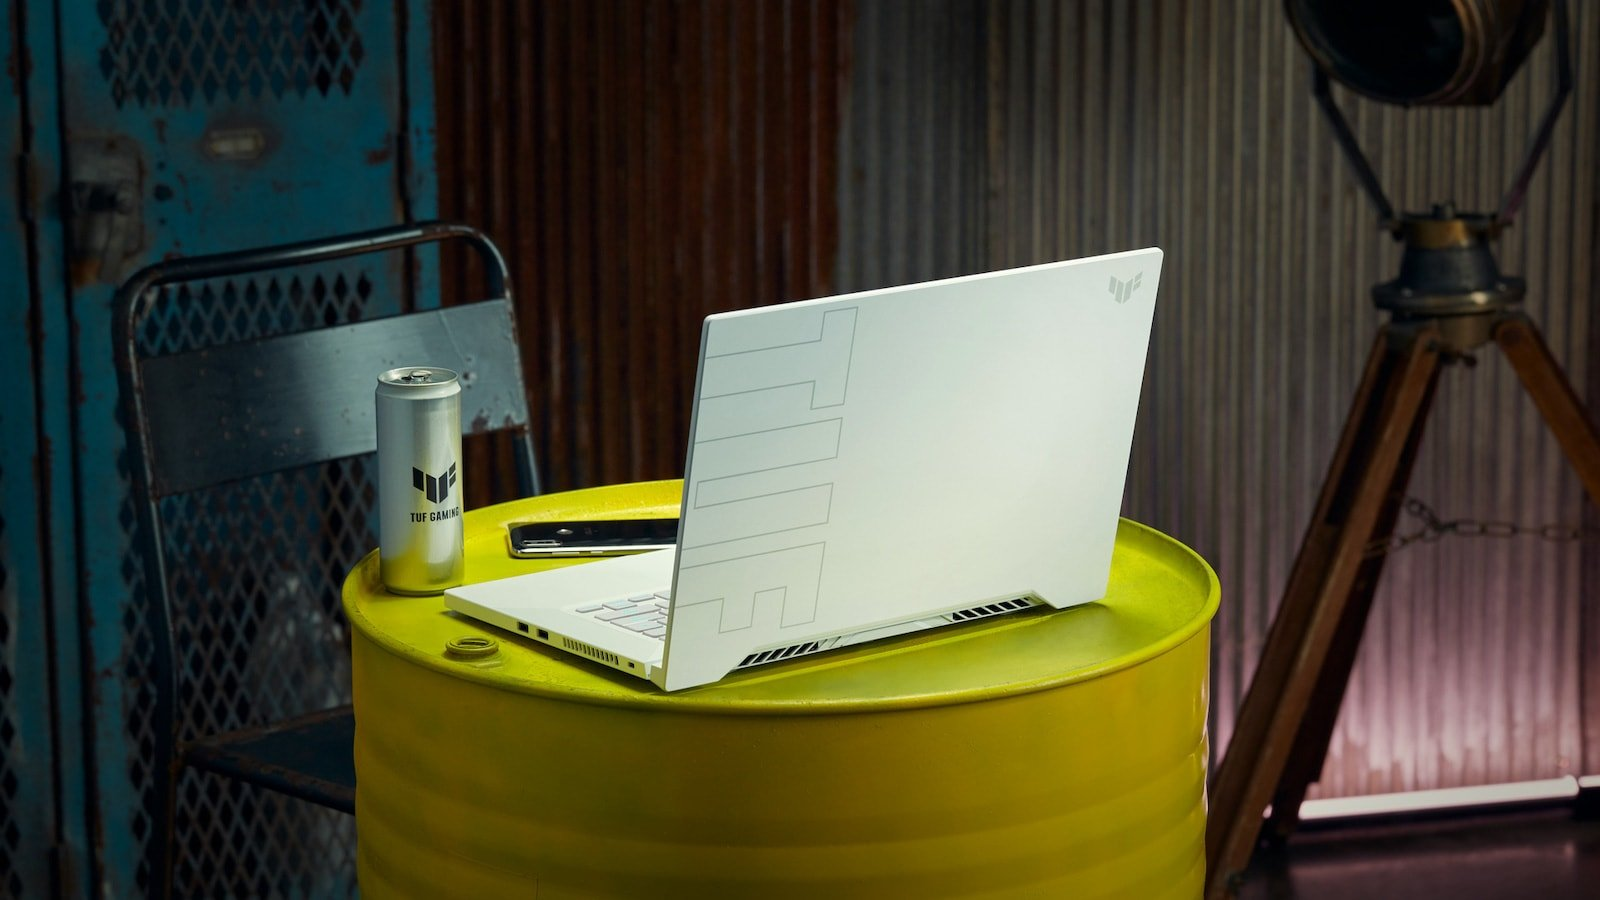 ASUS TUF Dash F15 2021 laptop has a seriously slim 19.9 mm chassis